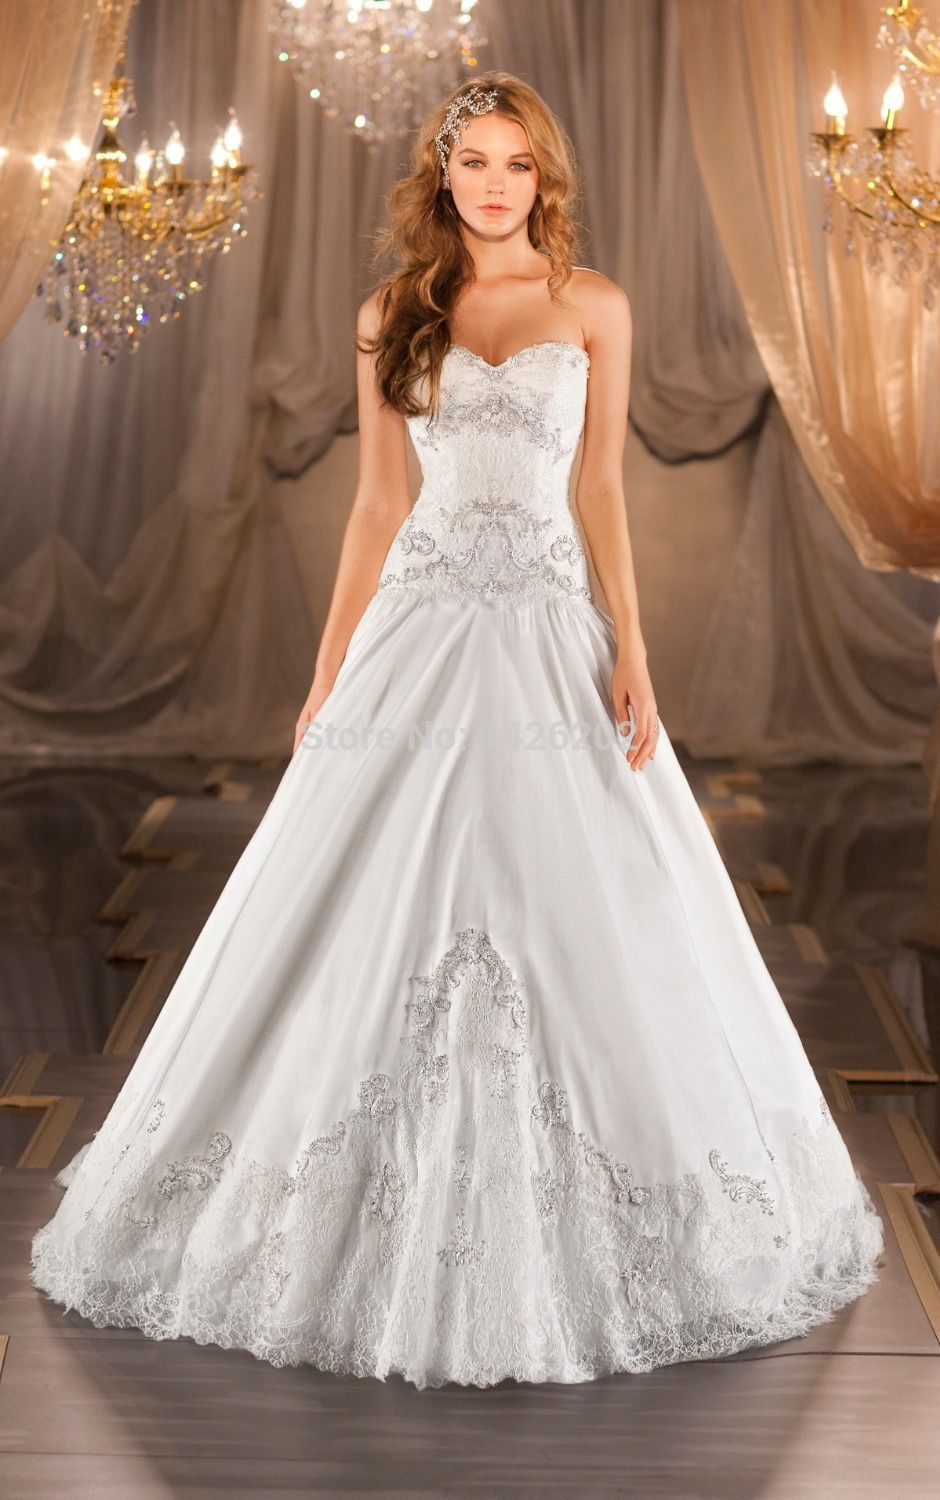 2019 Wedding Dresses Ebay - Plus Size Dresses for Wedding Guests ...